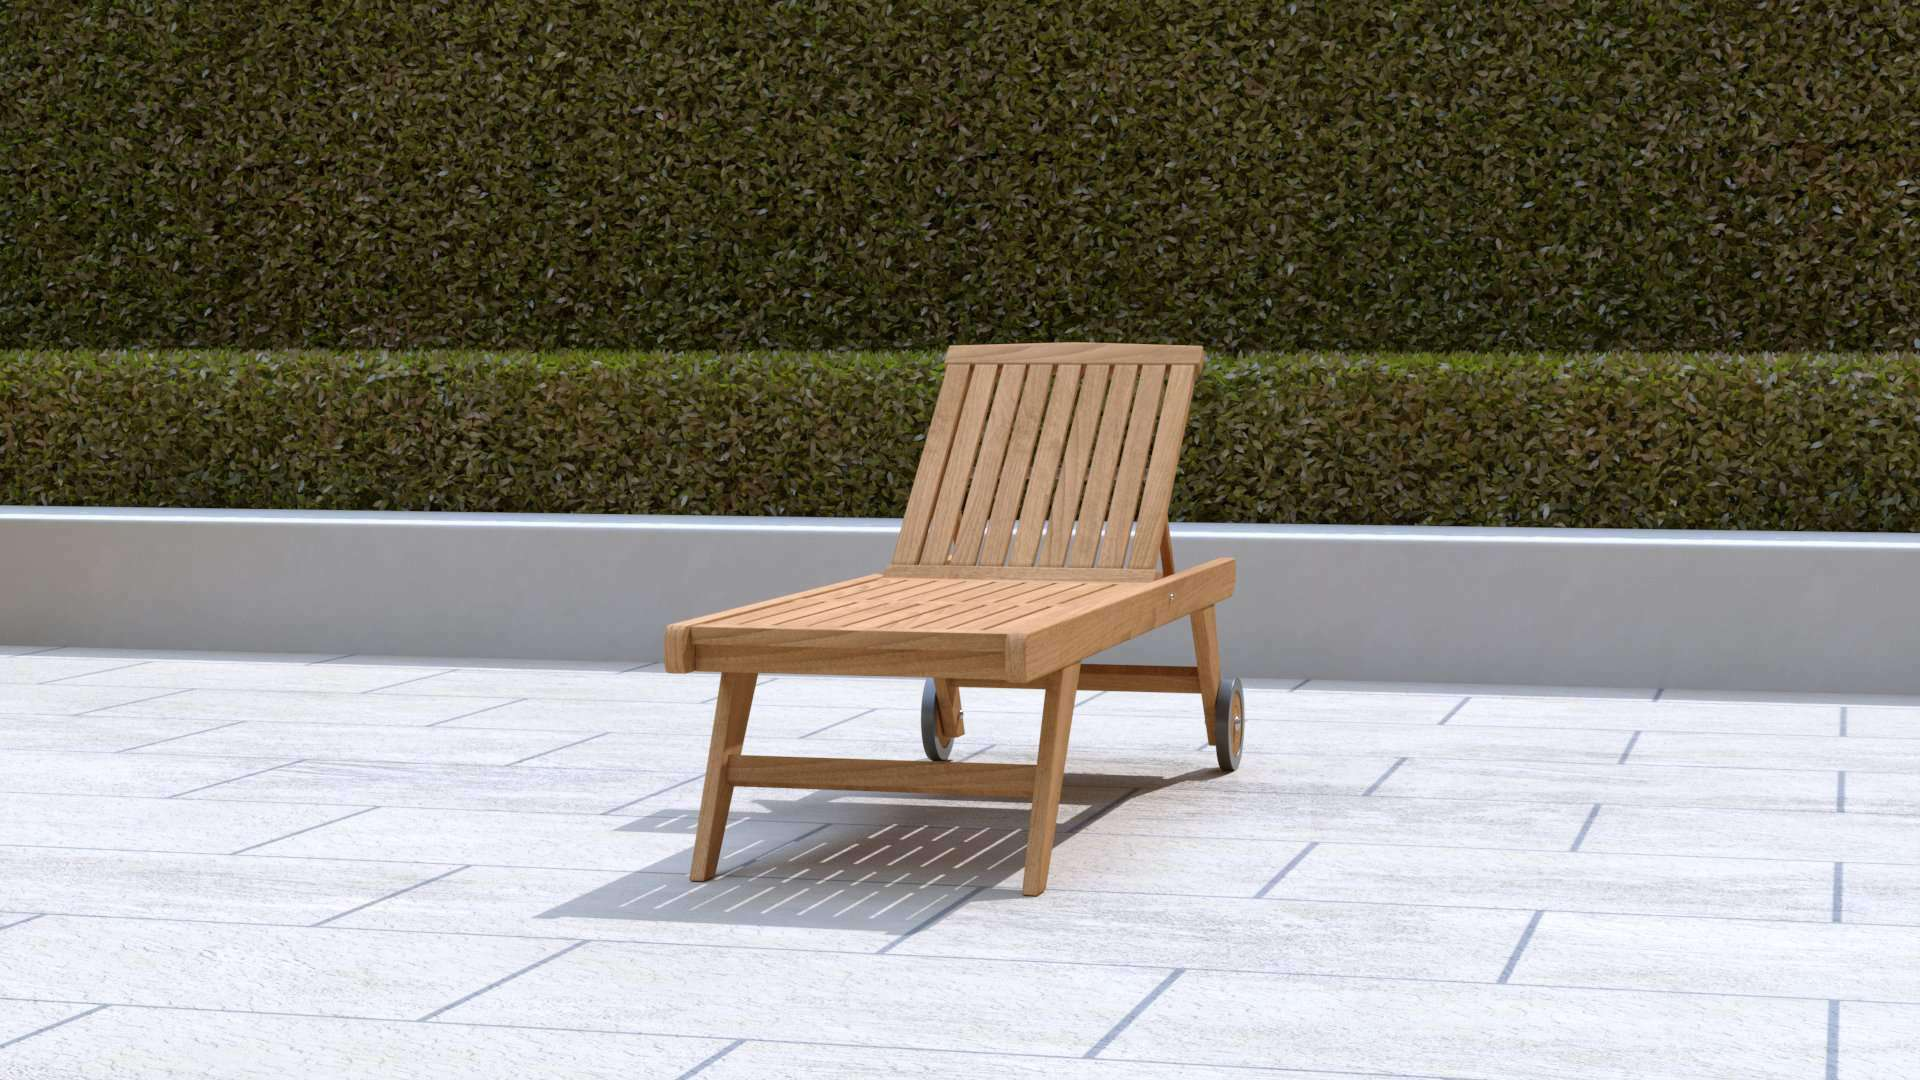 Teak Sun Lounger High Level with Wheels (Blue Cushion)  - Chic Teak® | Luxury Teak Furniture